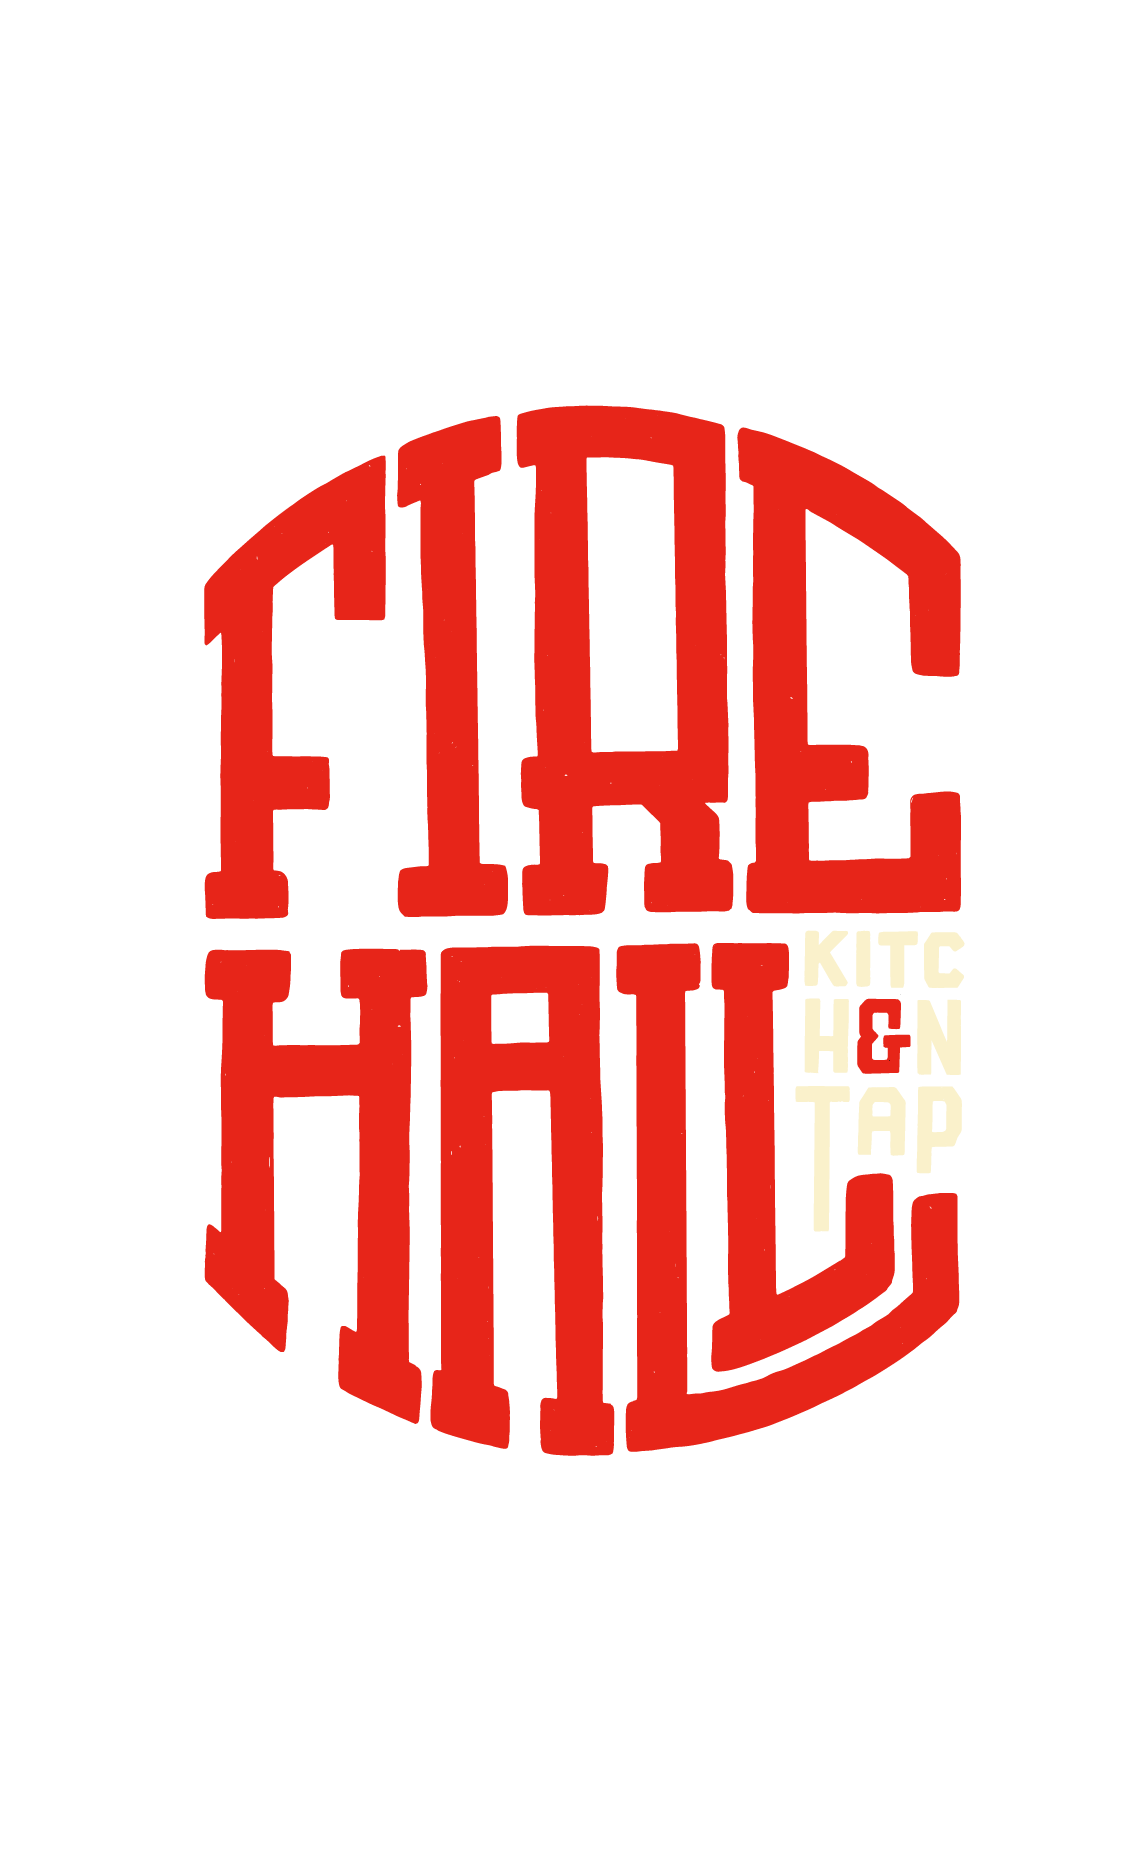 FIREHALL_OVAL_WEB copy.png